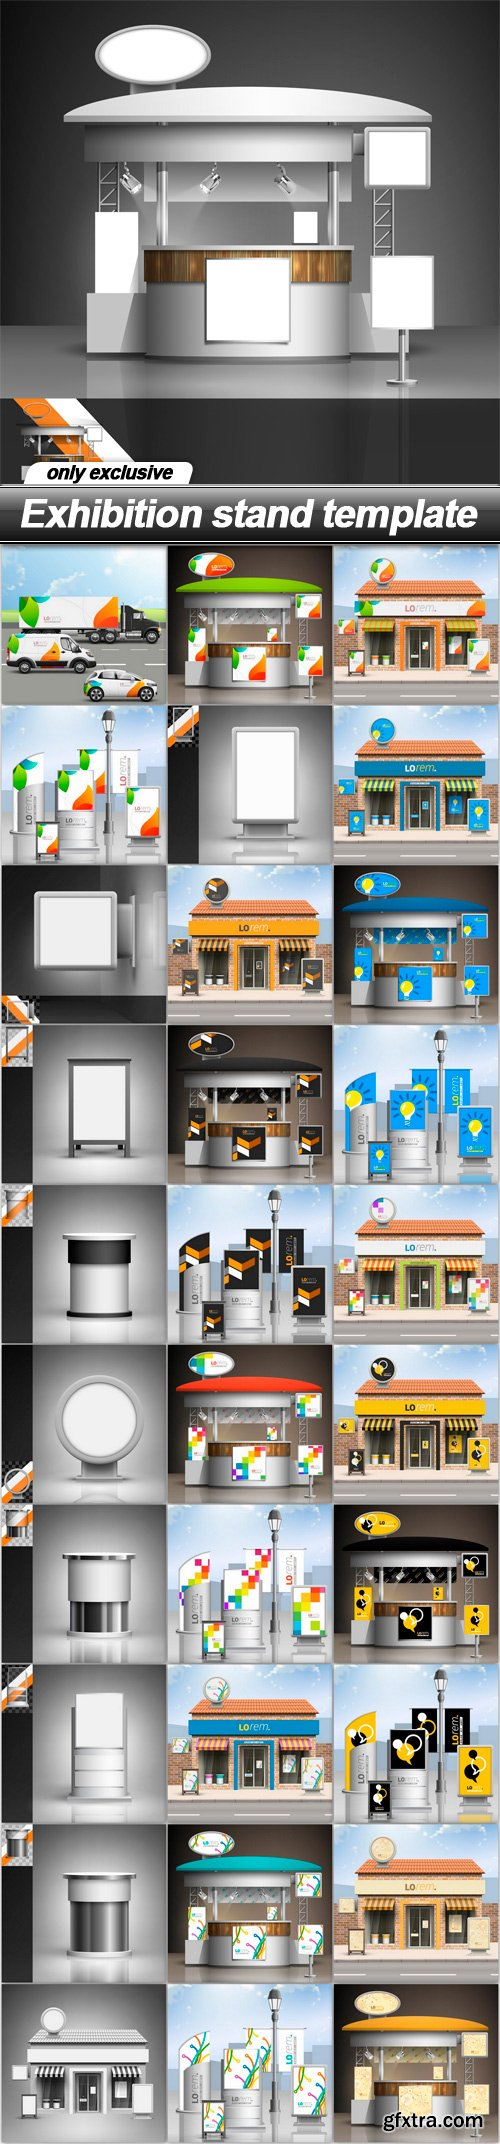 Exhibition stand template - 31 EPS